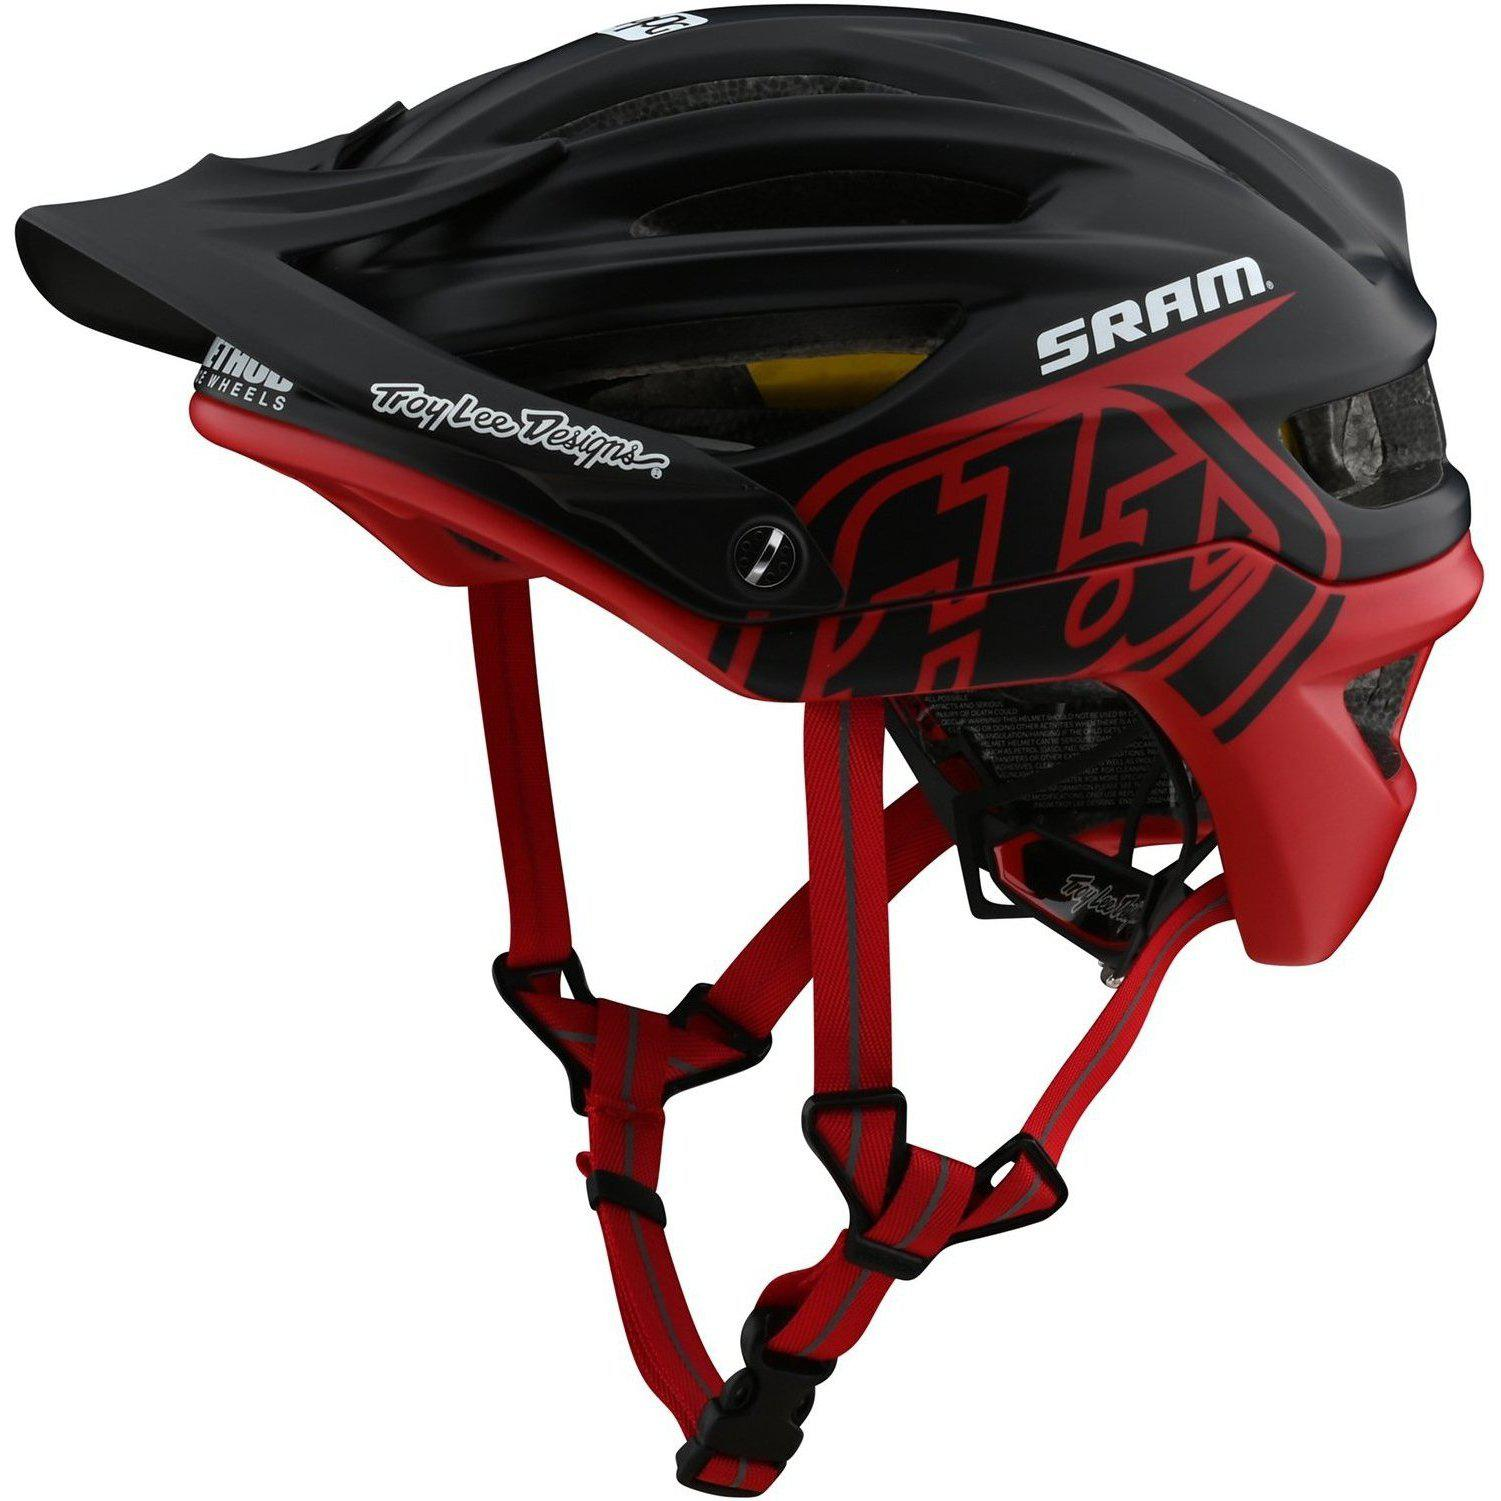 Troy Lee Designs-Troy Lee Designs A2 MIPS Helmet-Decoy - Sram Black/Red-M/L-TLD191485063-saddleback-elite-performance-cycling